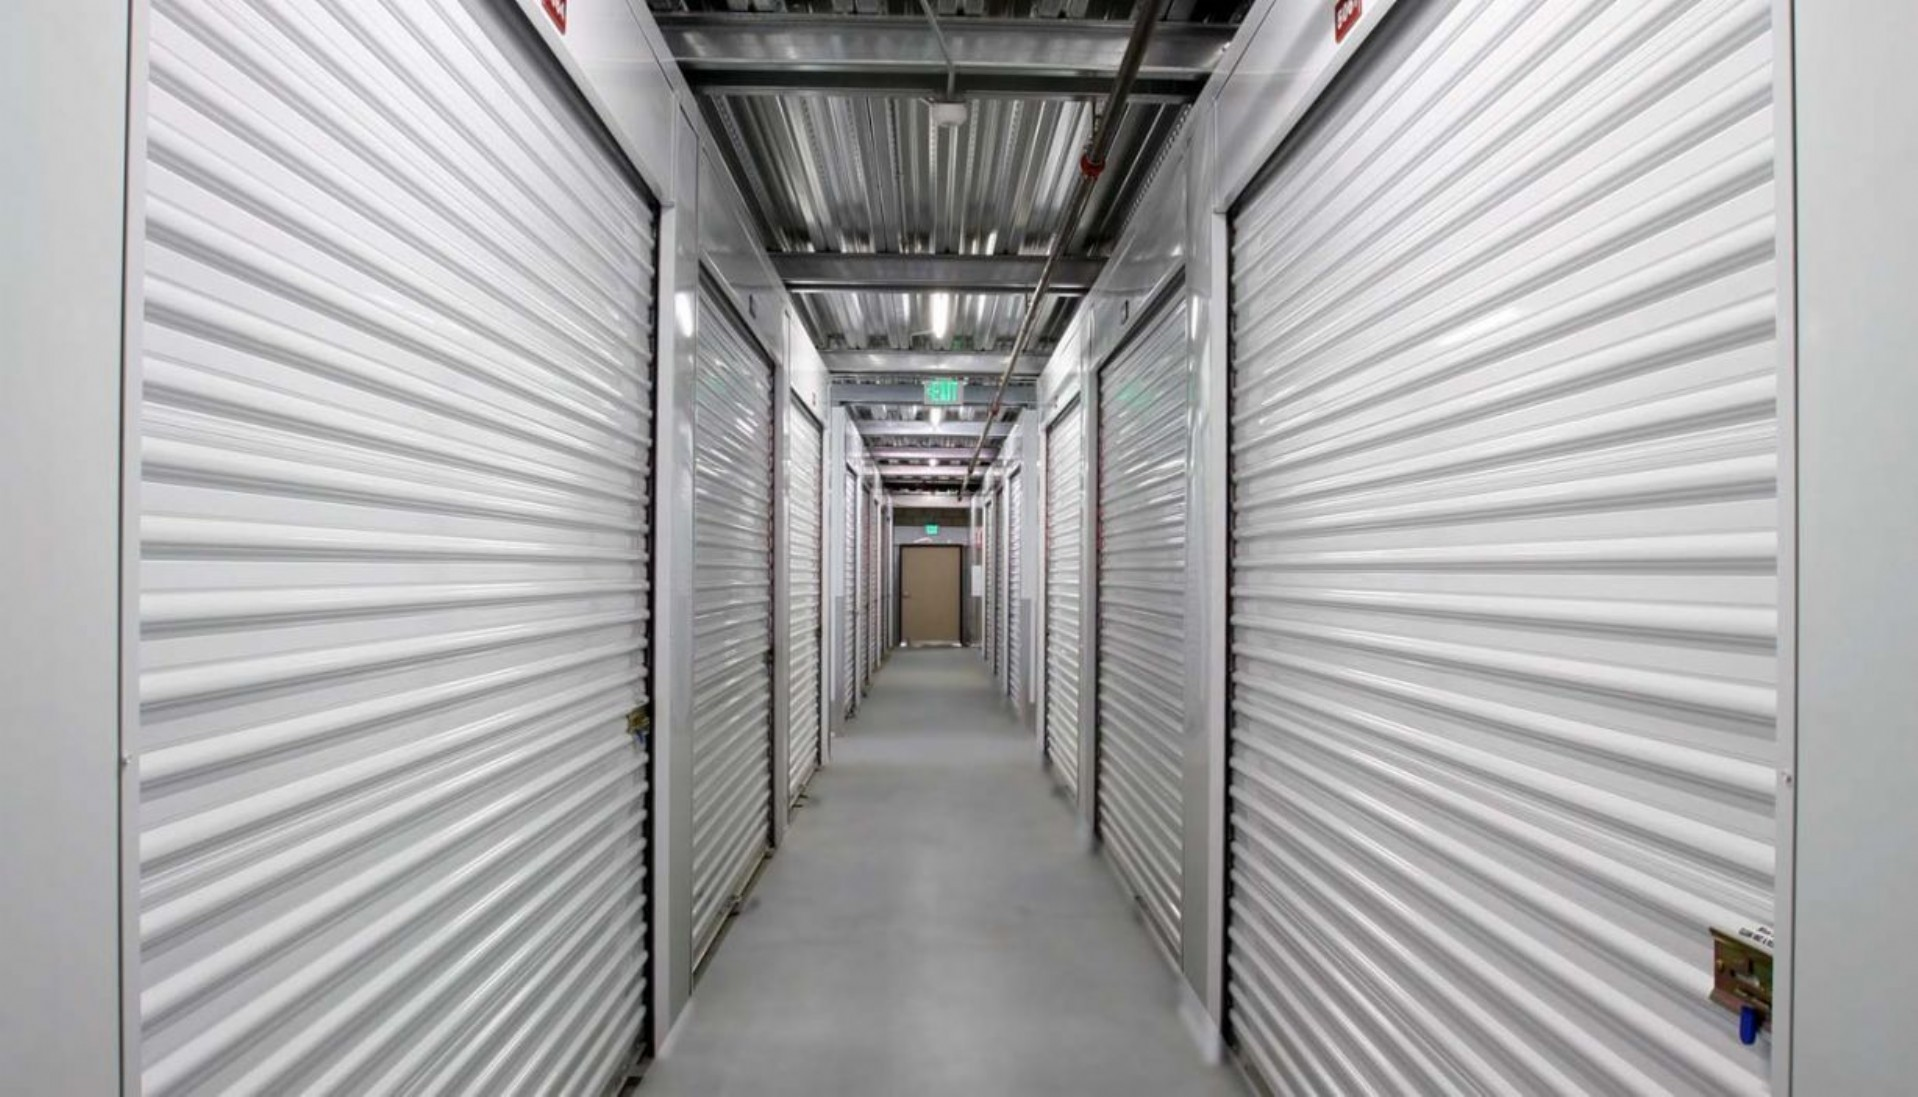 Interior hallway with various sizes of storage units with roll up doors